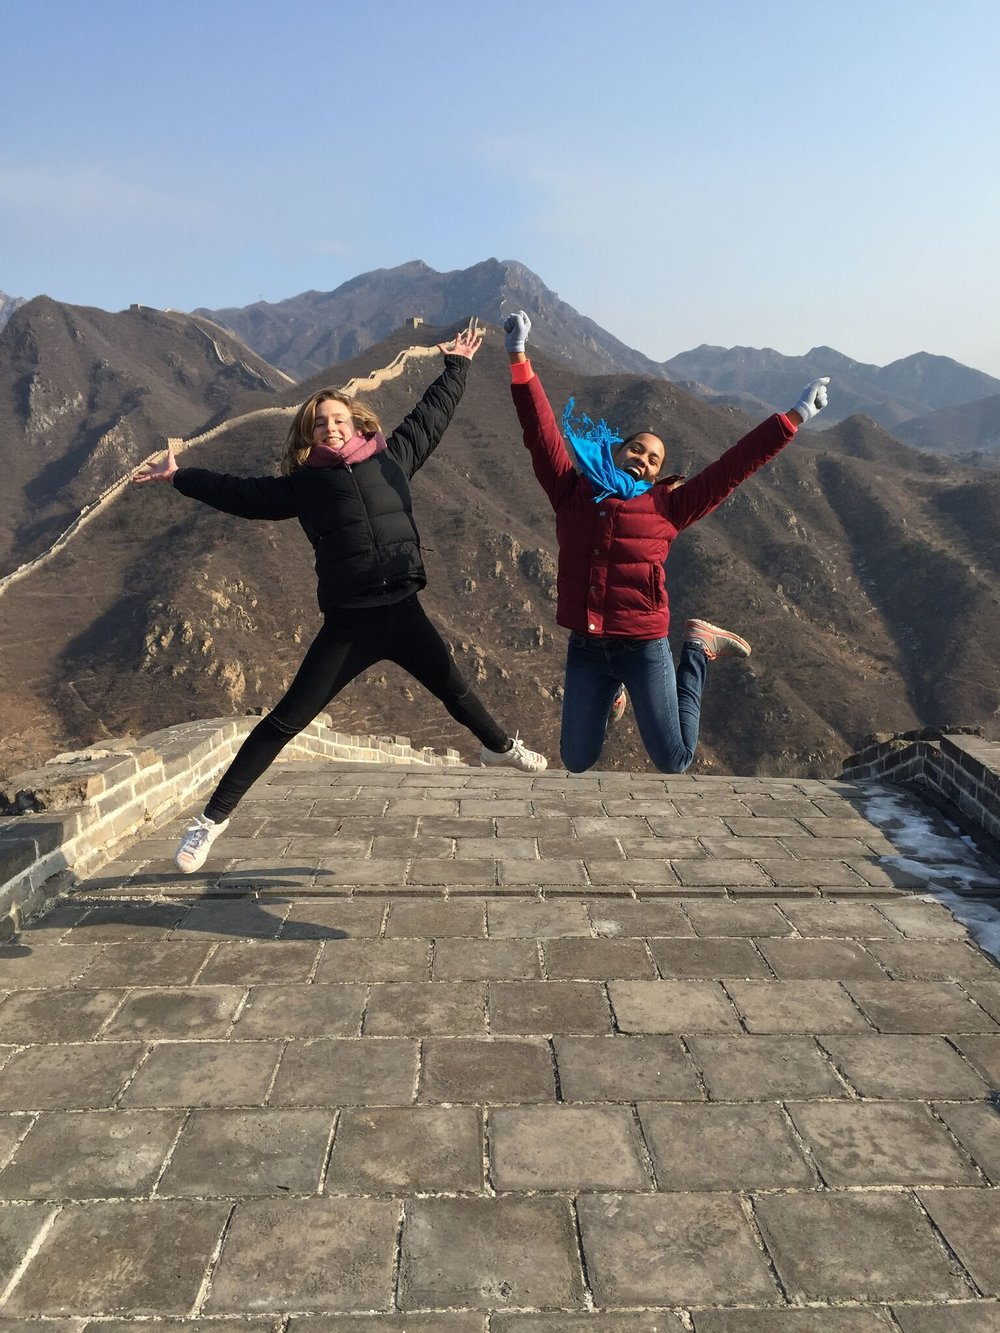 YFU exchange student Maya Hammond, right, jumping for a photo while hiking the Great Wall of China in Beijing for the first time with her European classmate.